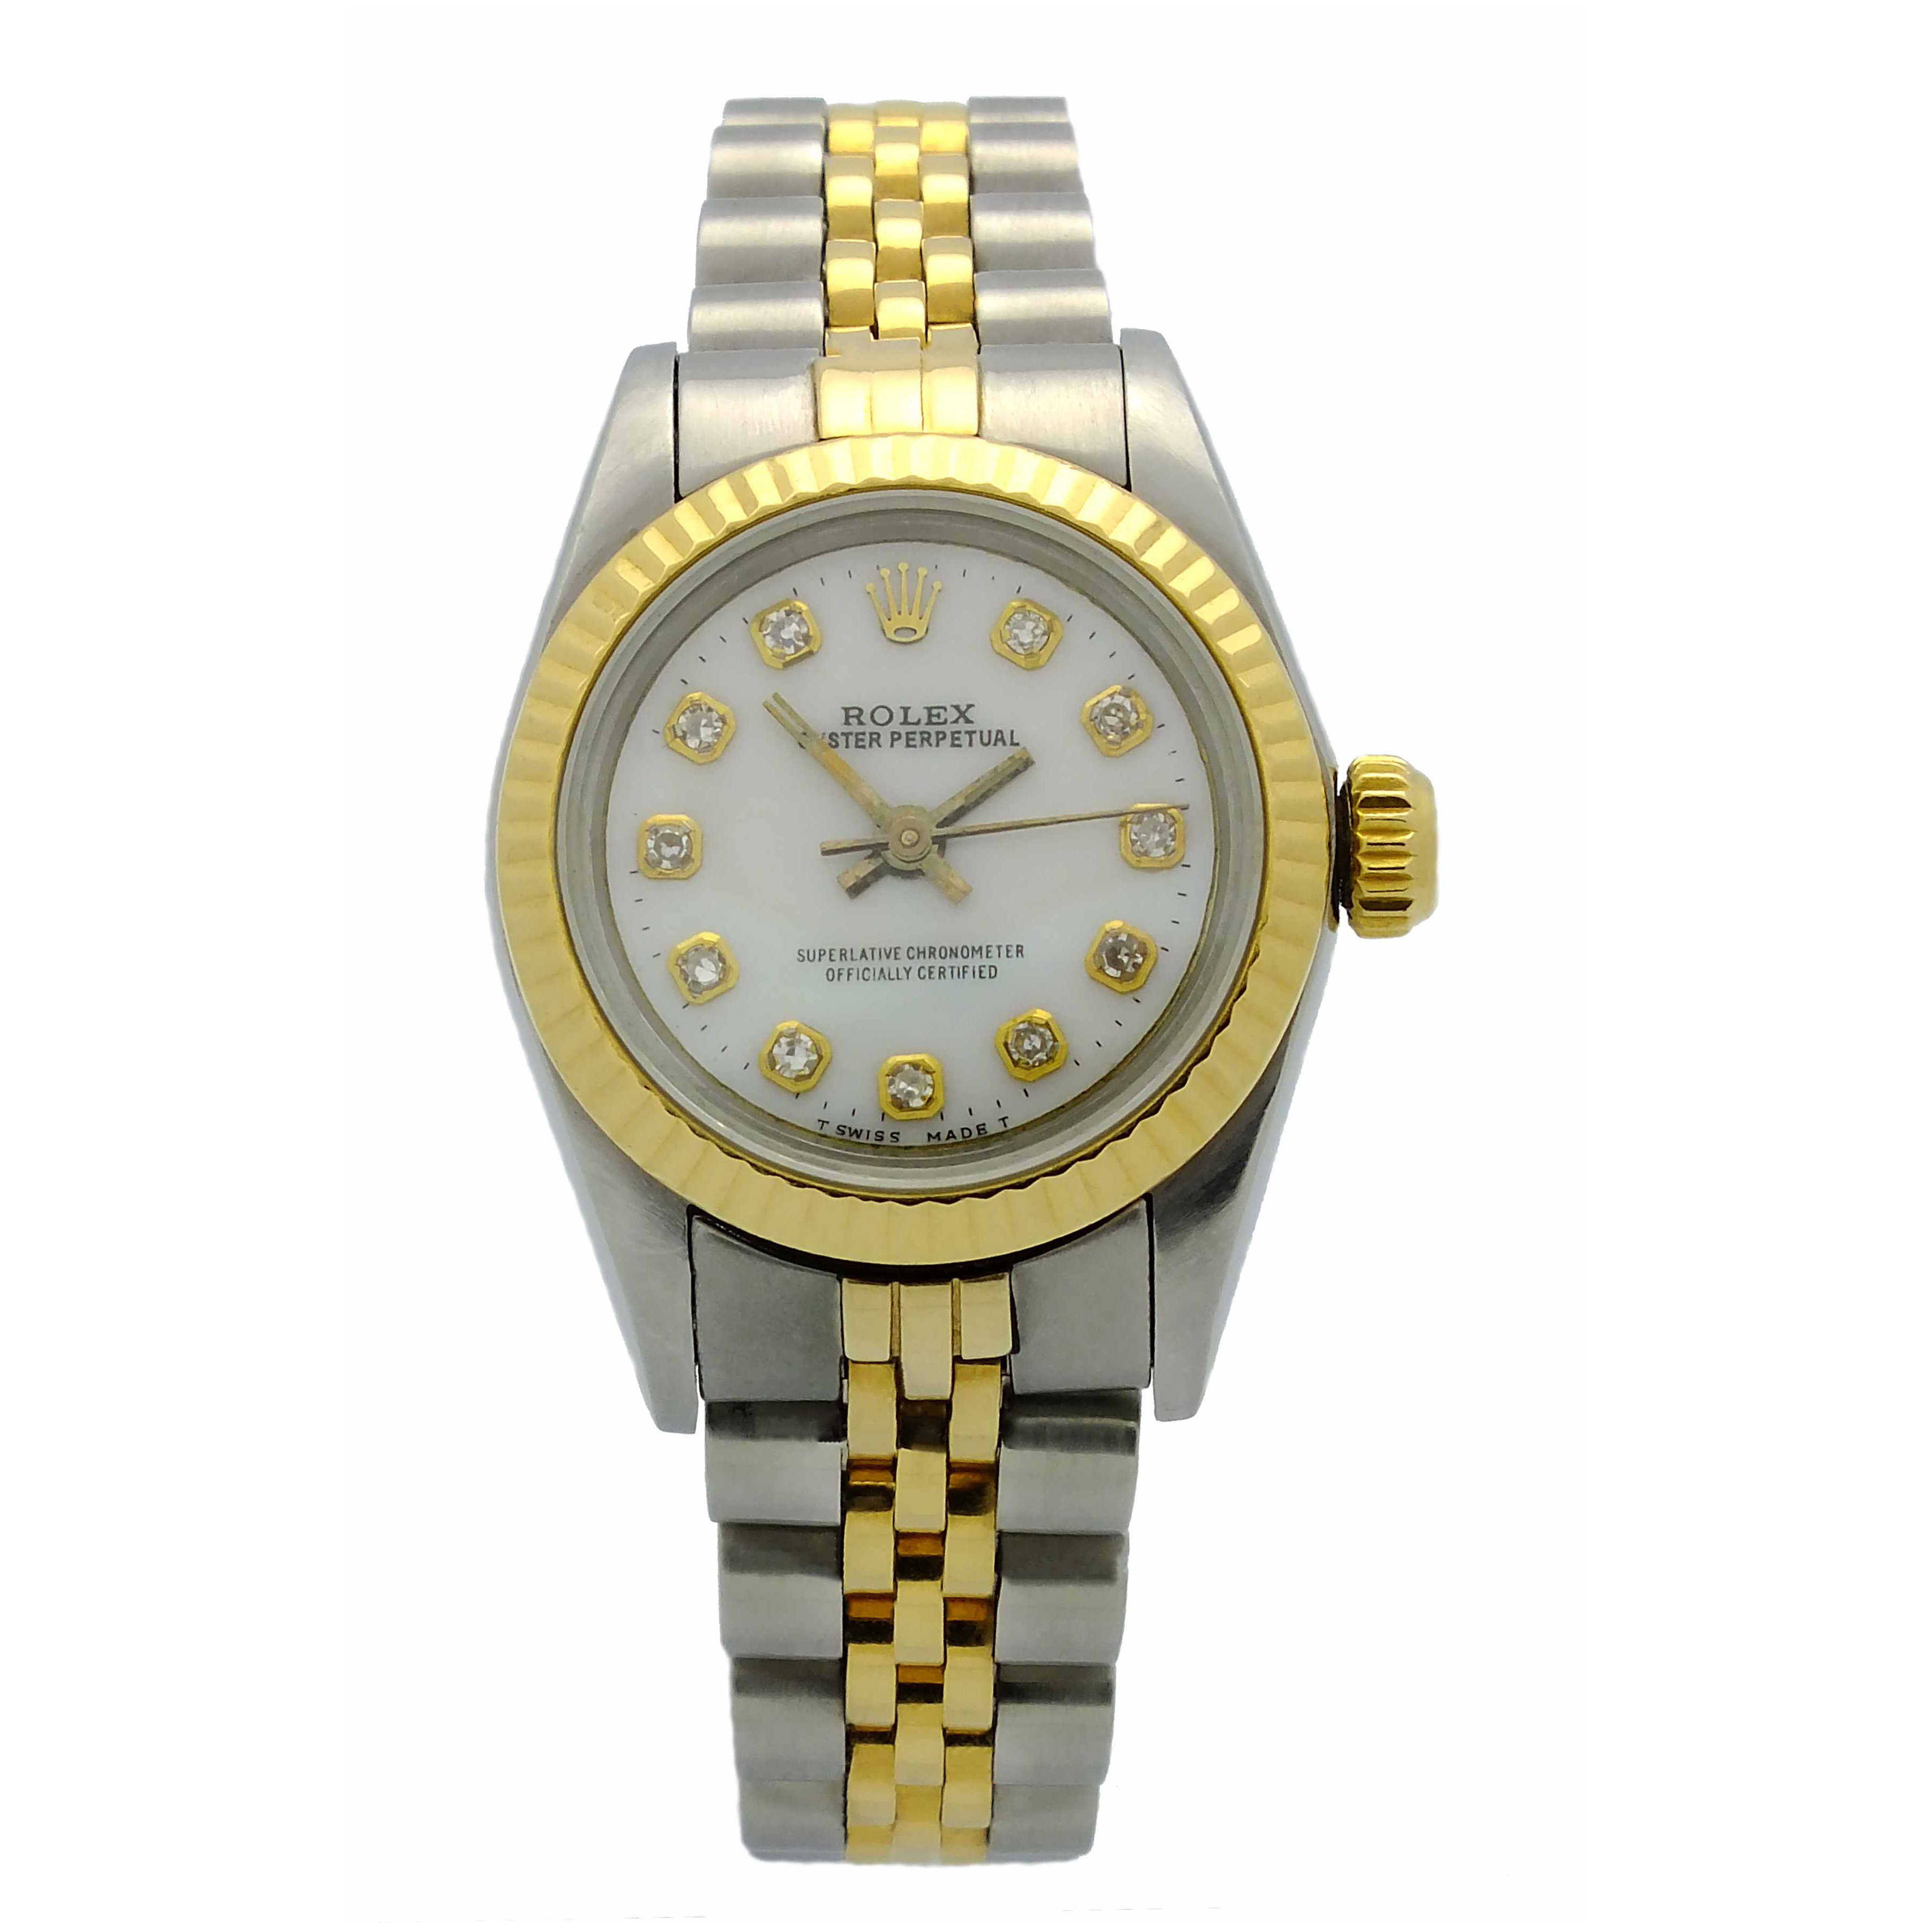 Ladies Rolex Oyster Perpetual (two tone) in 18kt yellow gold and stainless steel with jubilee bracelet, white dial with diamond hour markers